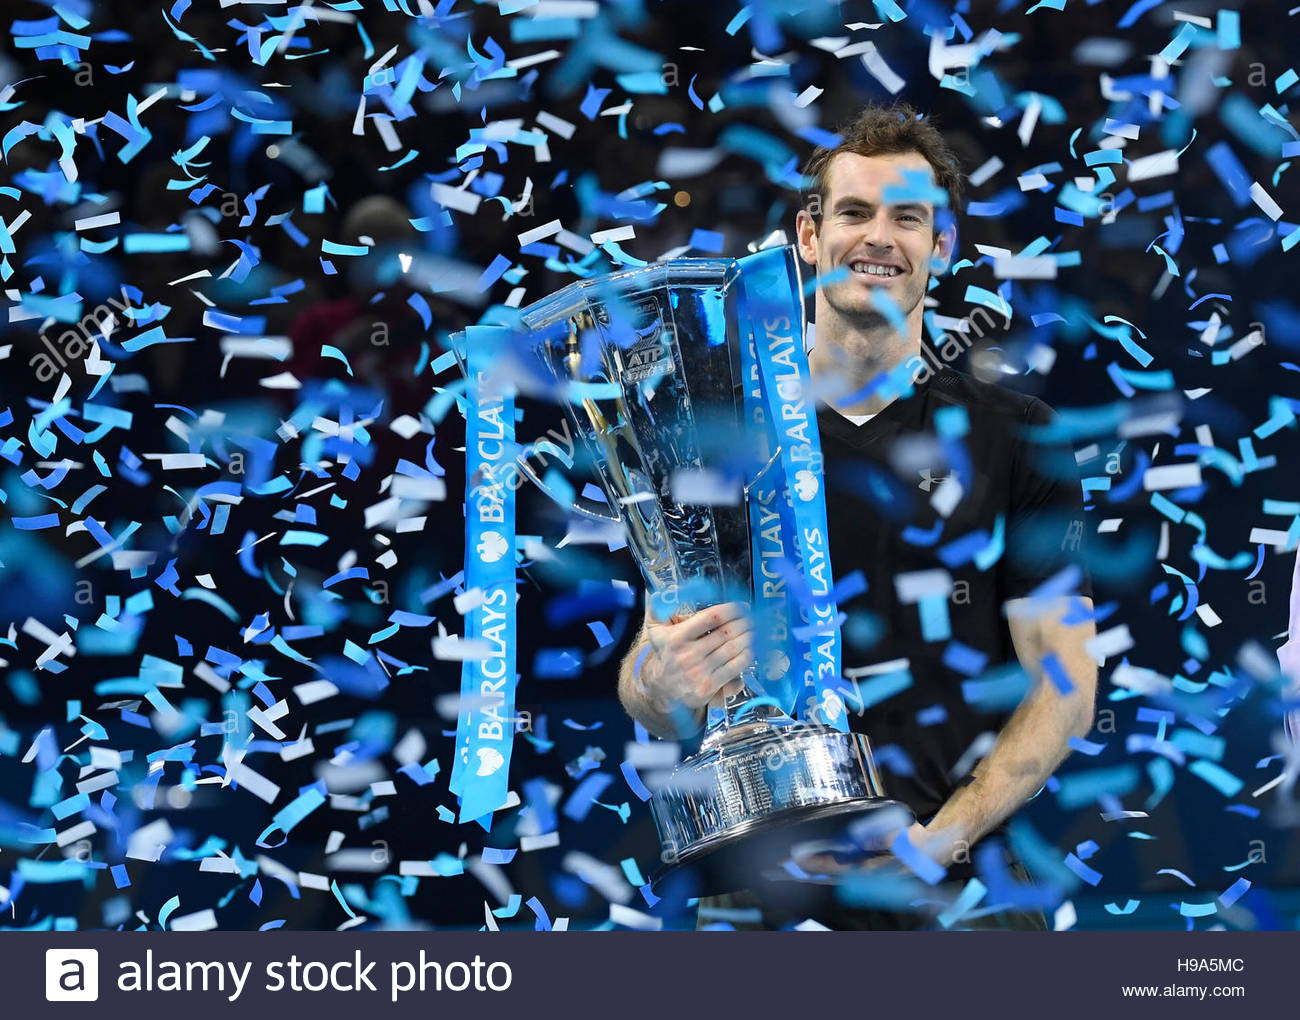 Tennis Britain - Barclays ATP World Tour Finals - O2 Arena, London - 20/11/16 Great Britain's Andy Murray celebrates Stock Foto